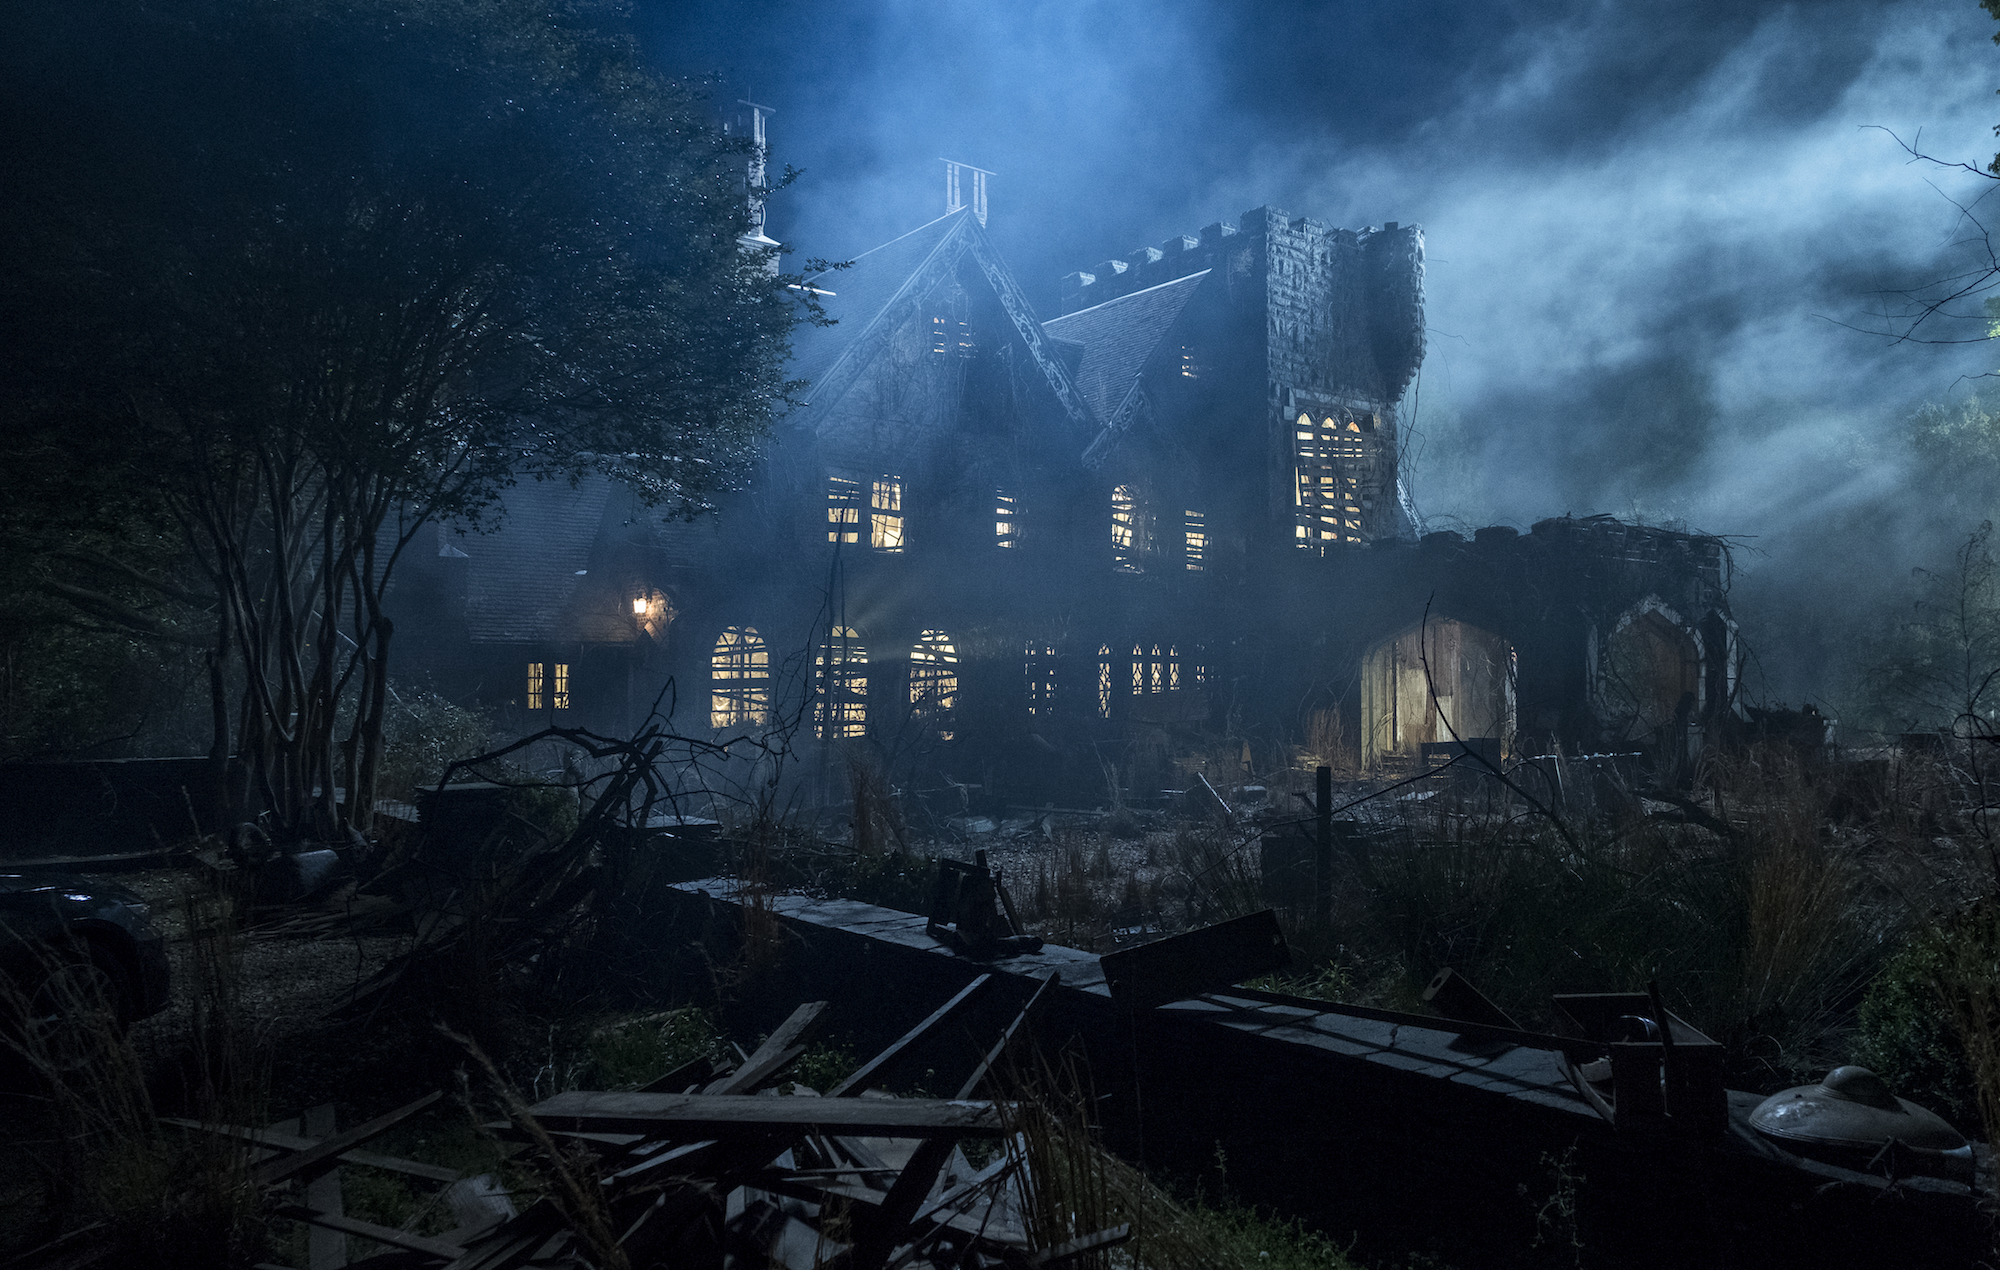 The Haunting of Hill House still